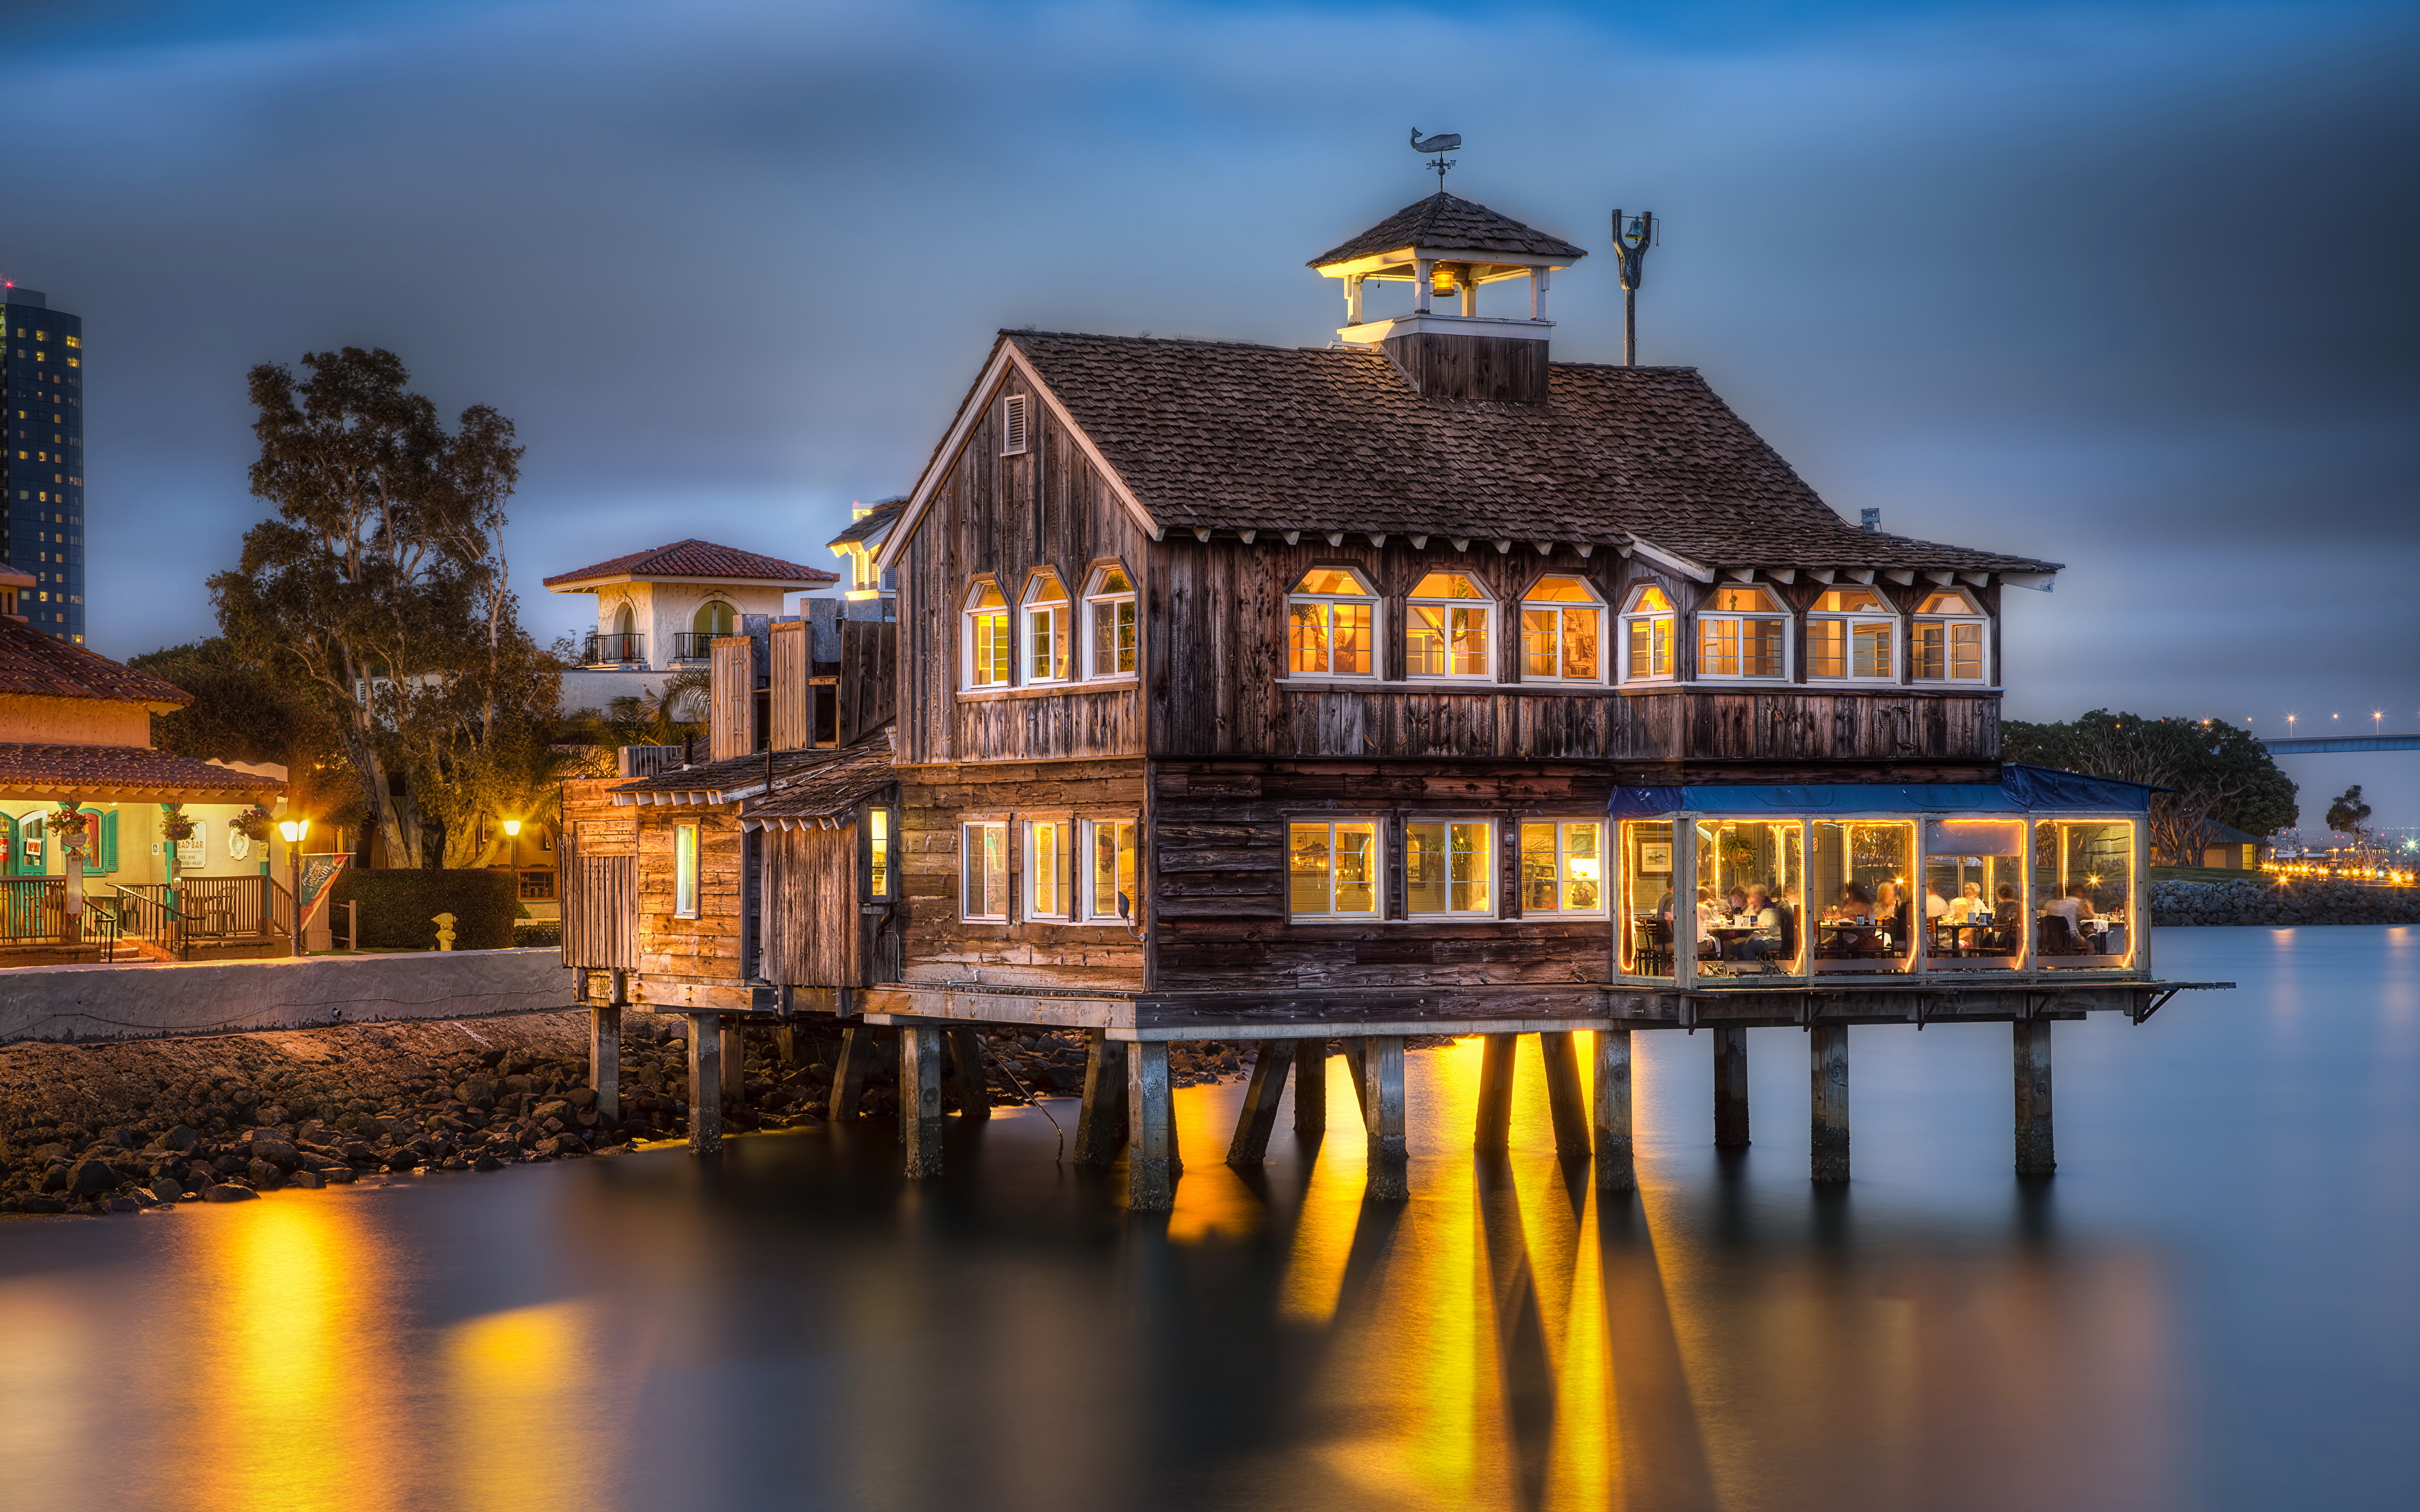 Images San Diego California USA HDRI from wood Cities 3840x2400